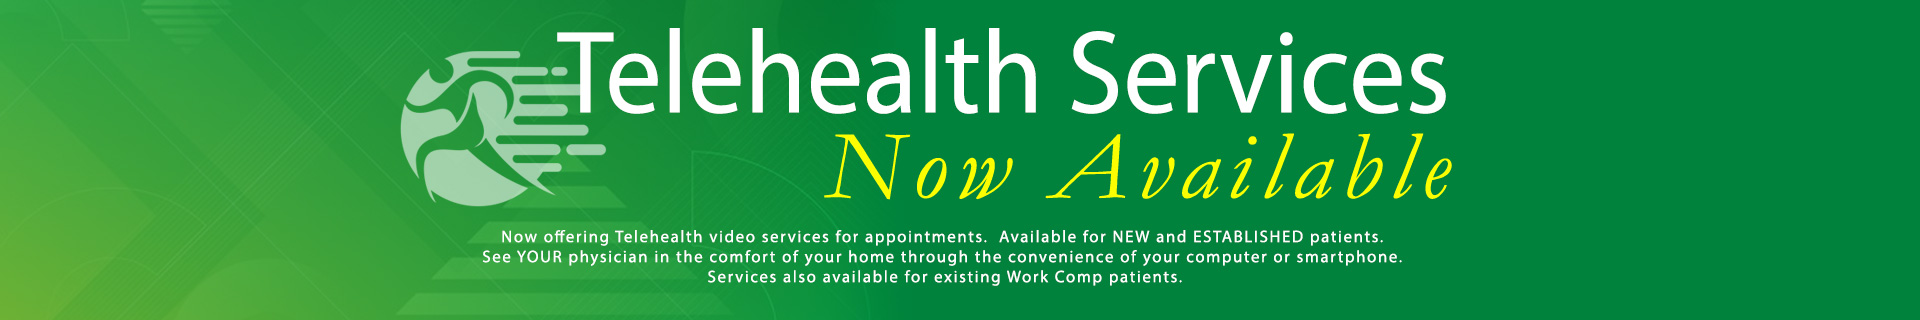 Orthocollier - Telehealth Services Now Available